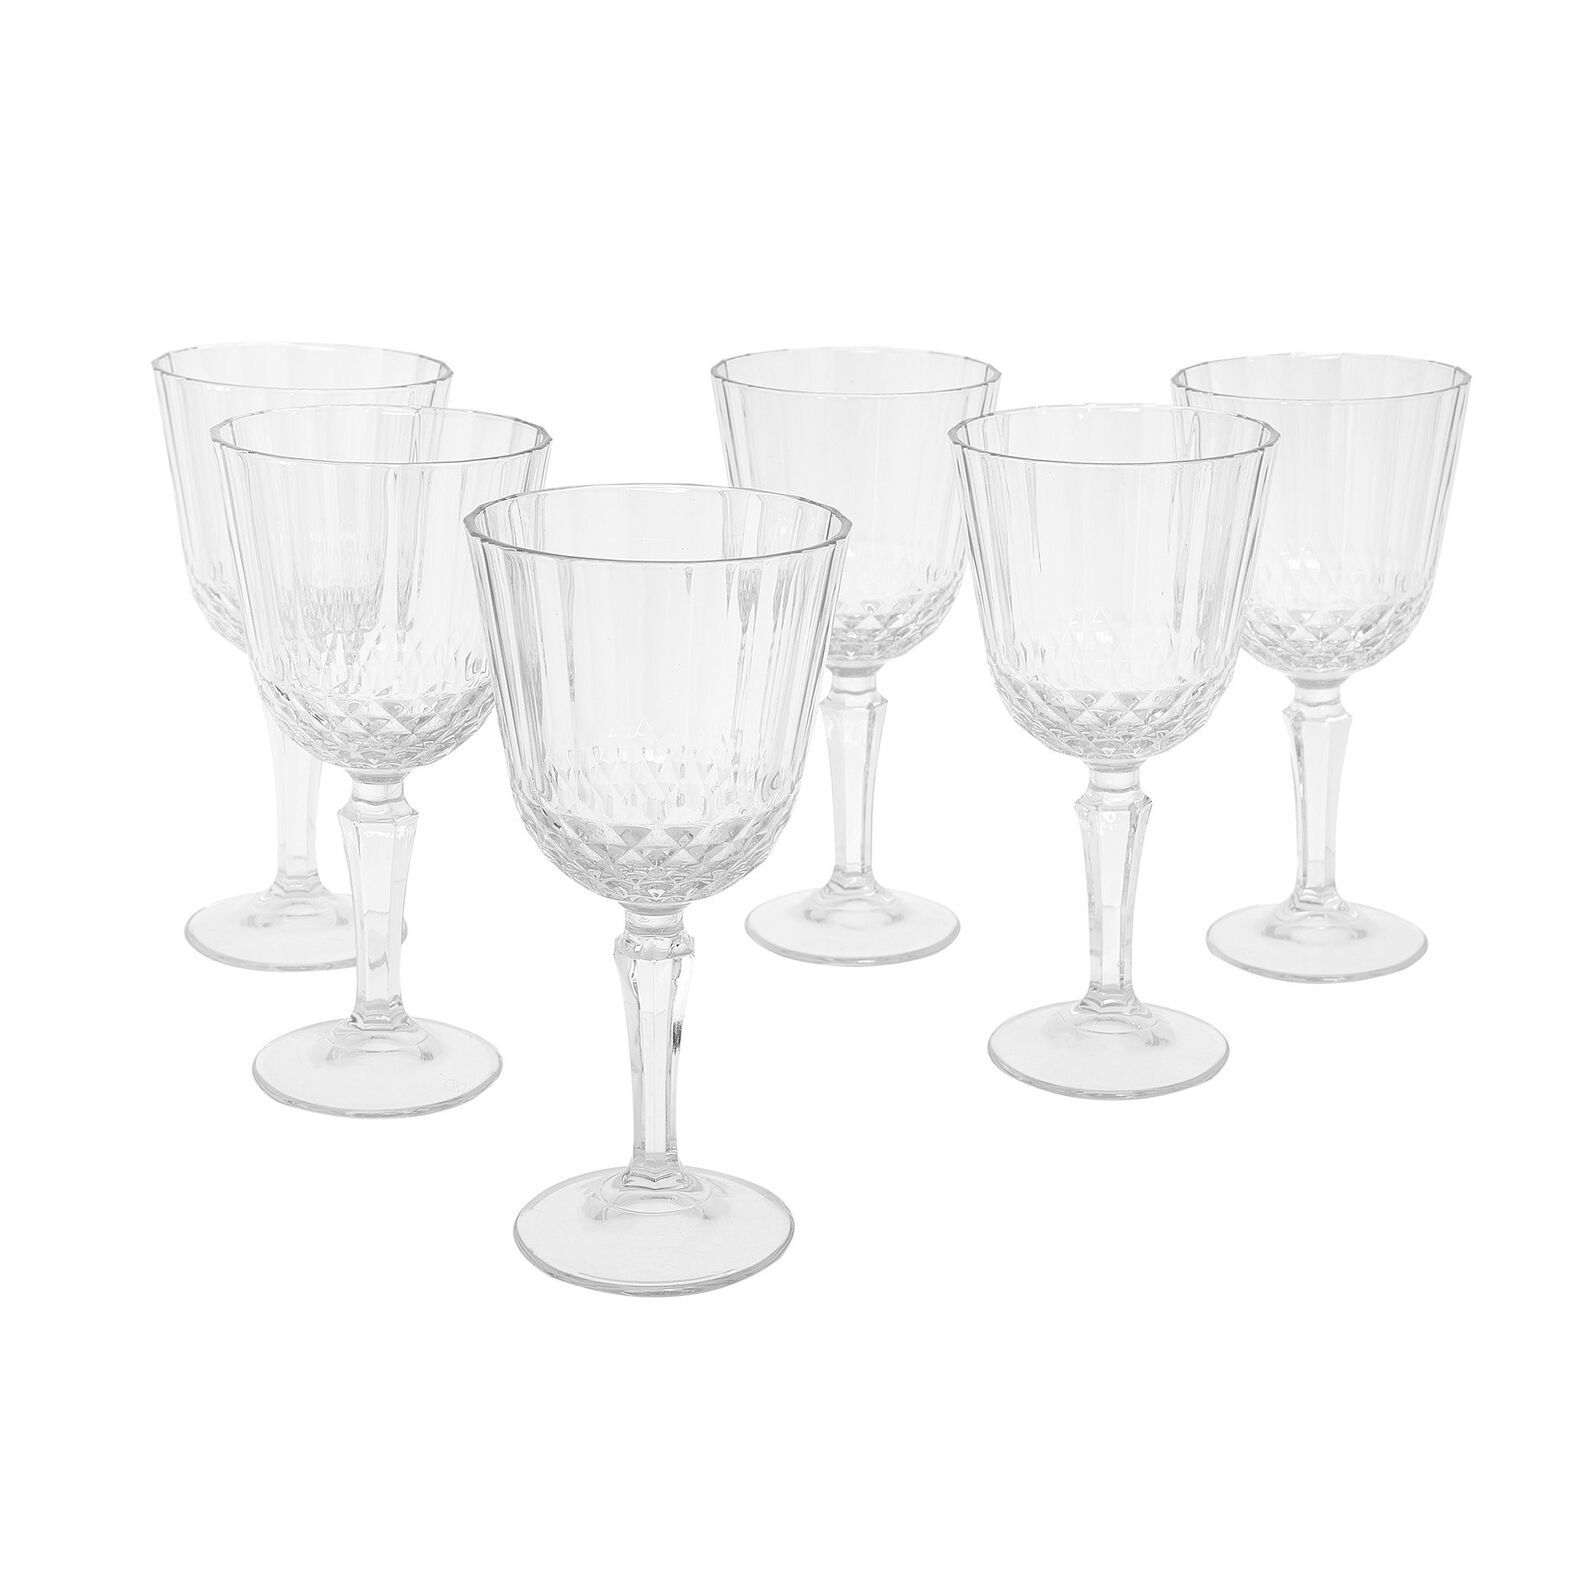 Set of 6 glass Diony water goblets